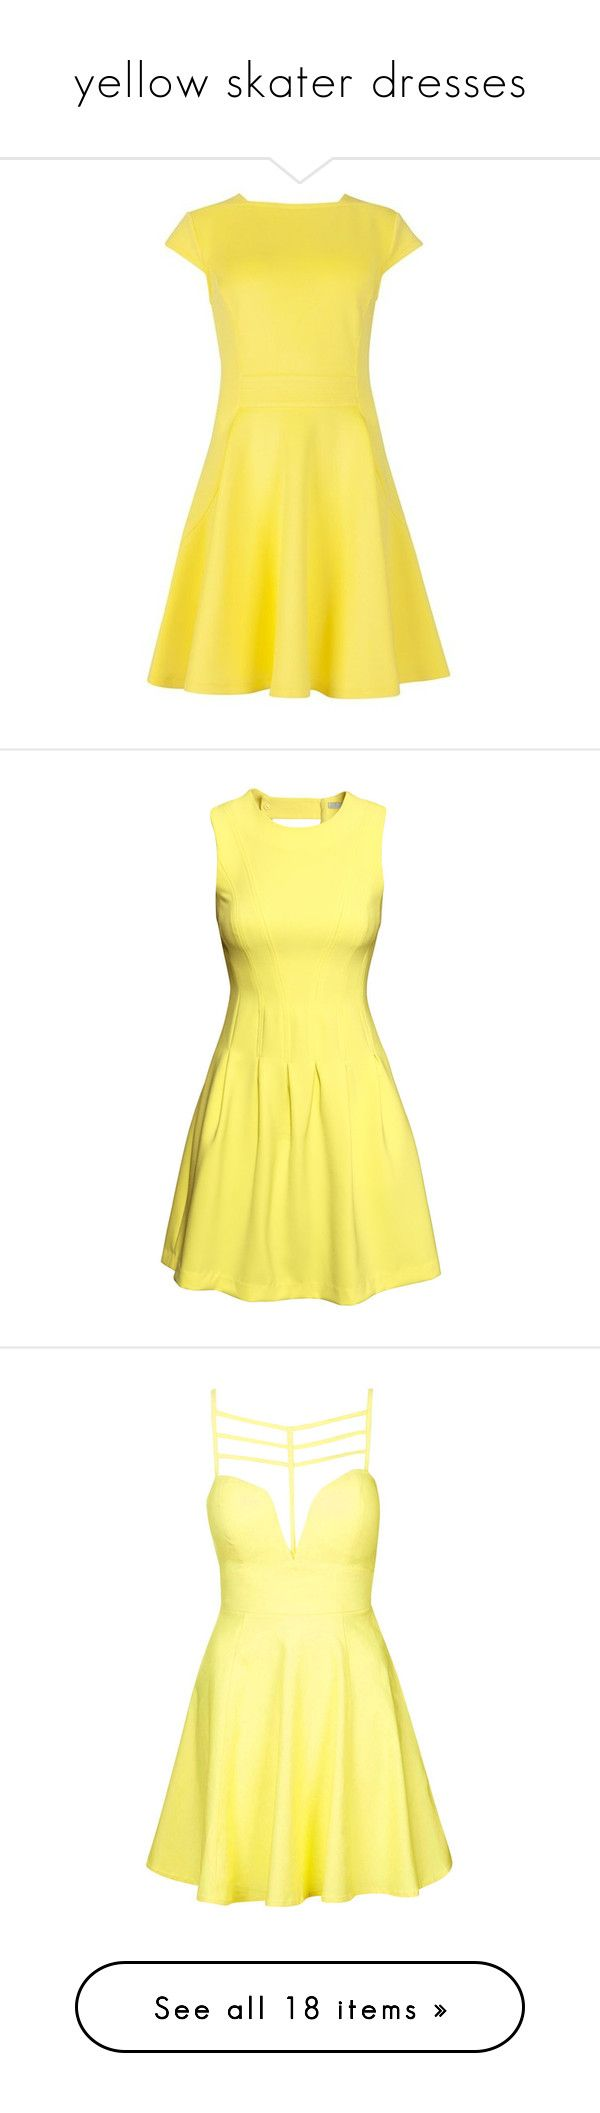 """yellow skater dresses"" by lulucosby ❤ liked on Polyvore featuring dresses, yellow maxi dress, bohemian dresses, bohemian maxi dress, bohemian summer dresses, yellow dress, yellow, short dresses, h&m and vestidos"